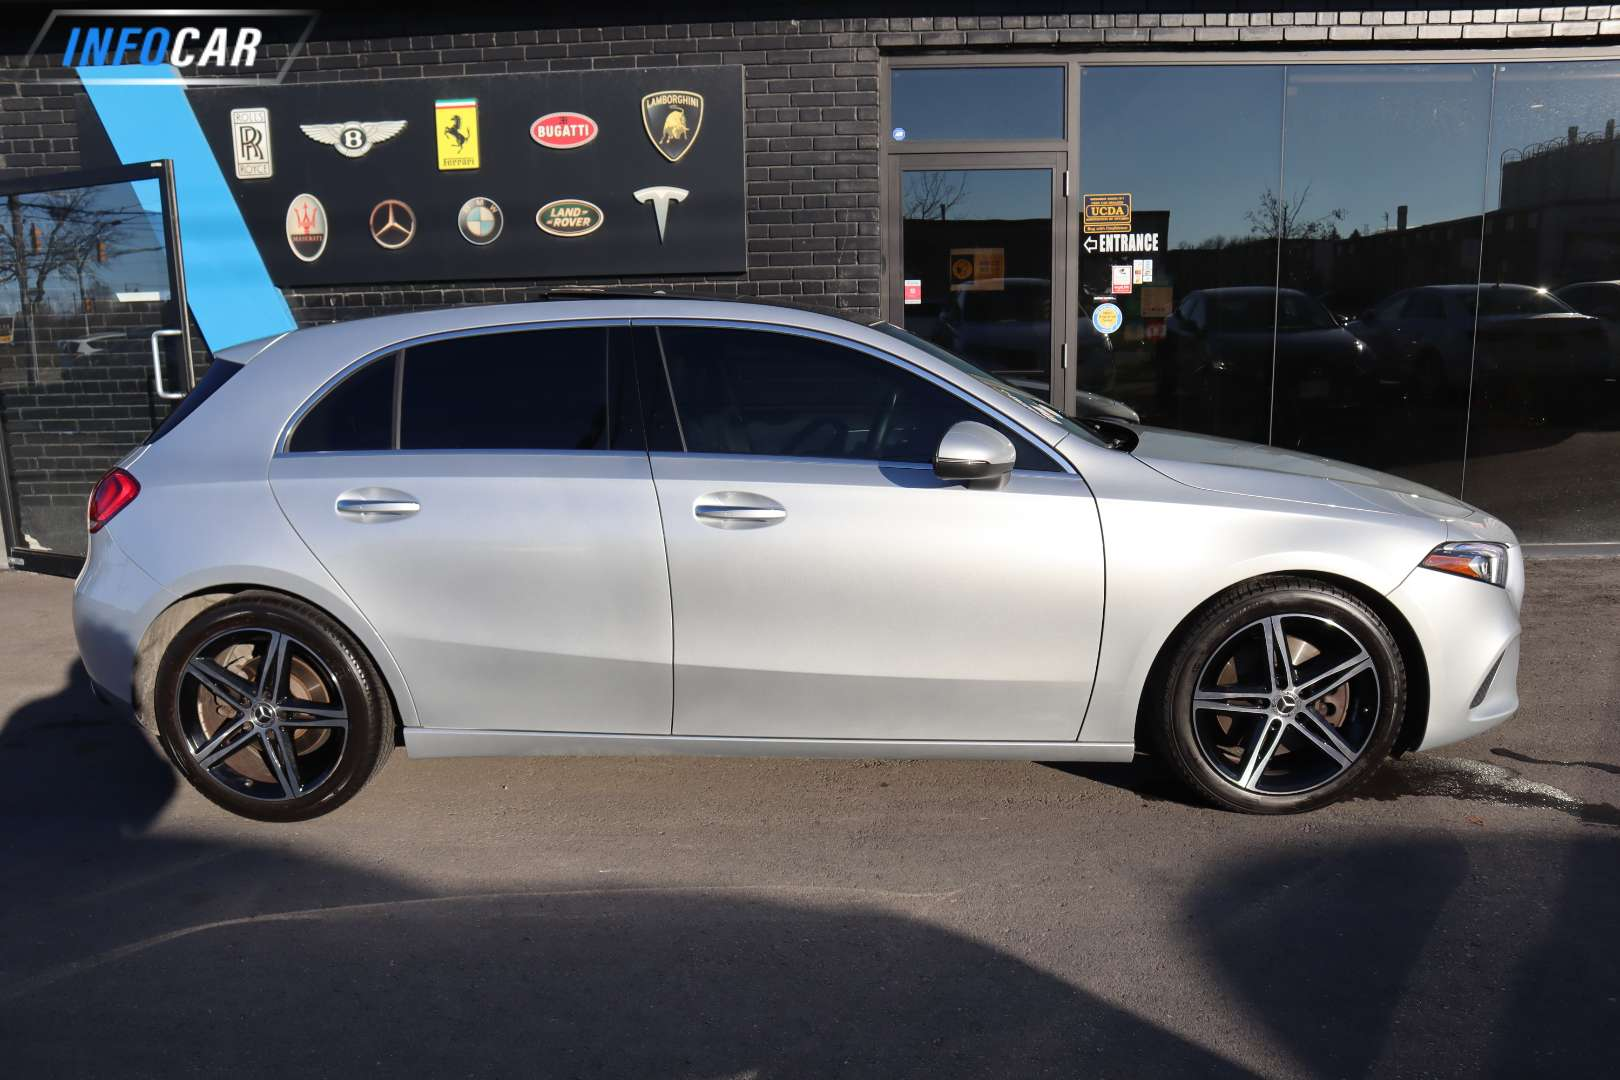 2019 Mercedes-Benz A-Class A250 - INFOCAR - Toronto's Most Comprehensive New and Used Auto Trading Platform